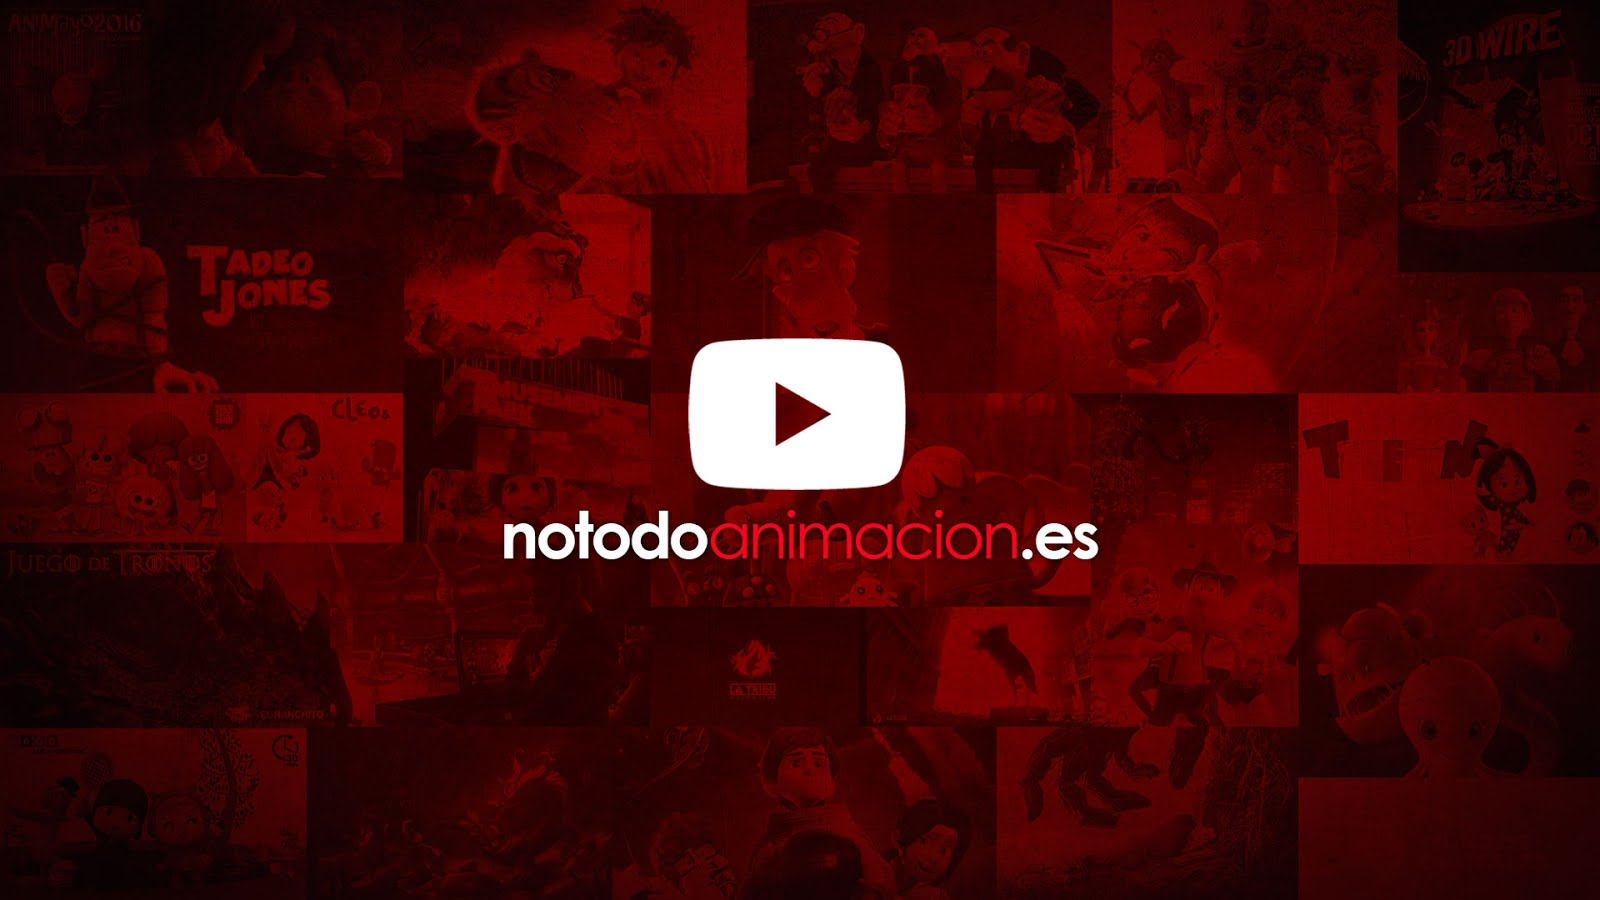 Sigue nuestro canal en Youtube